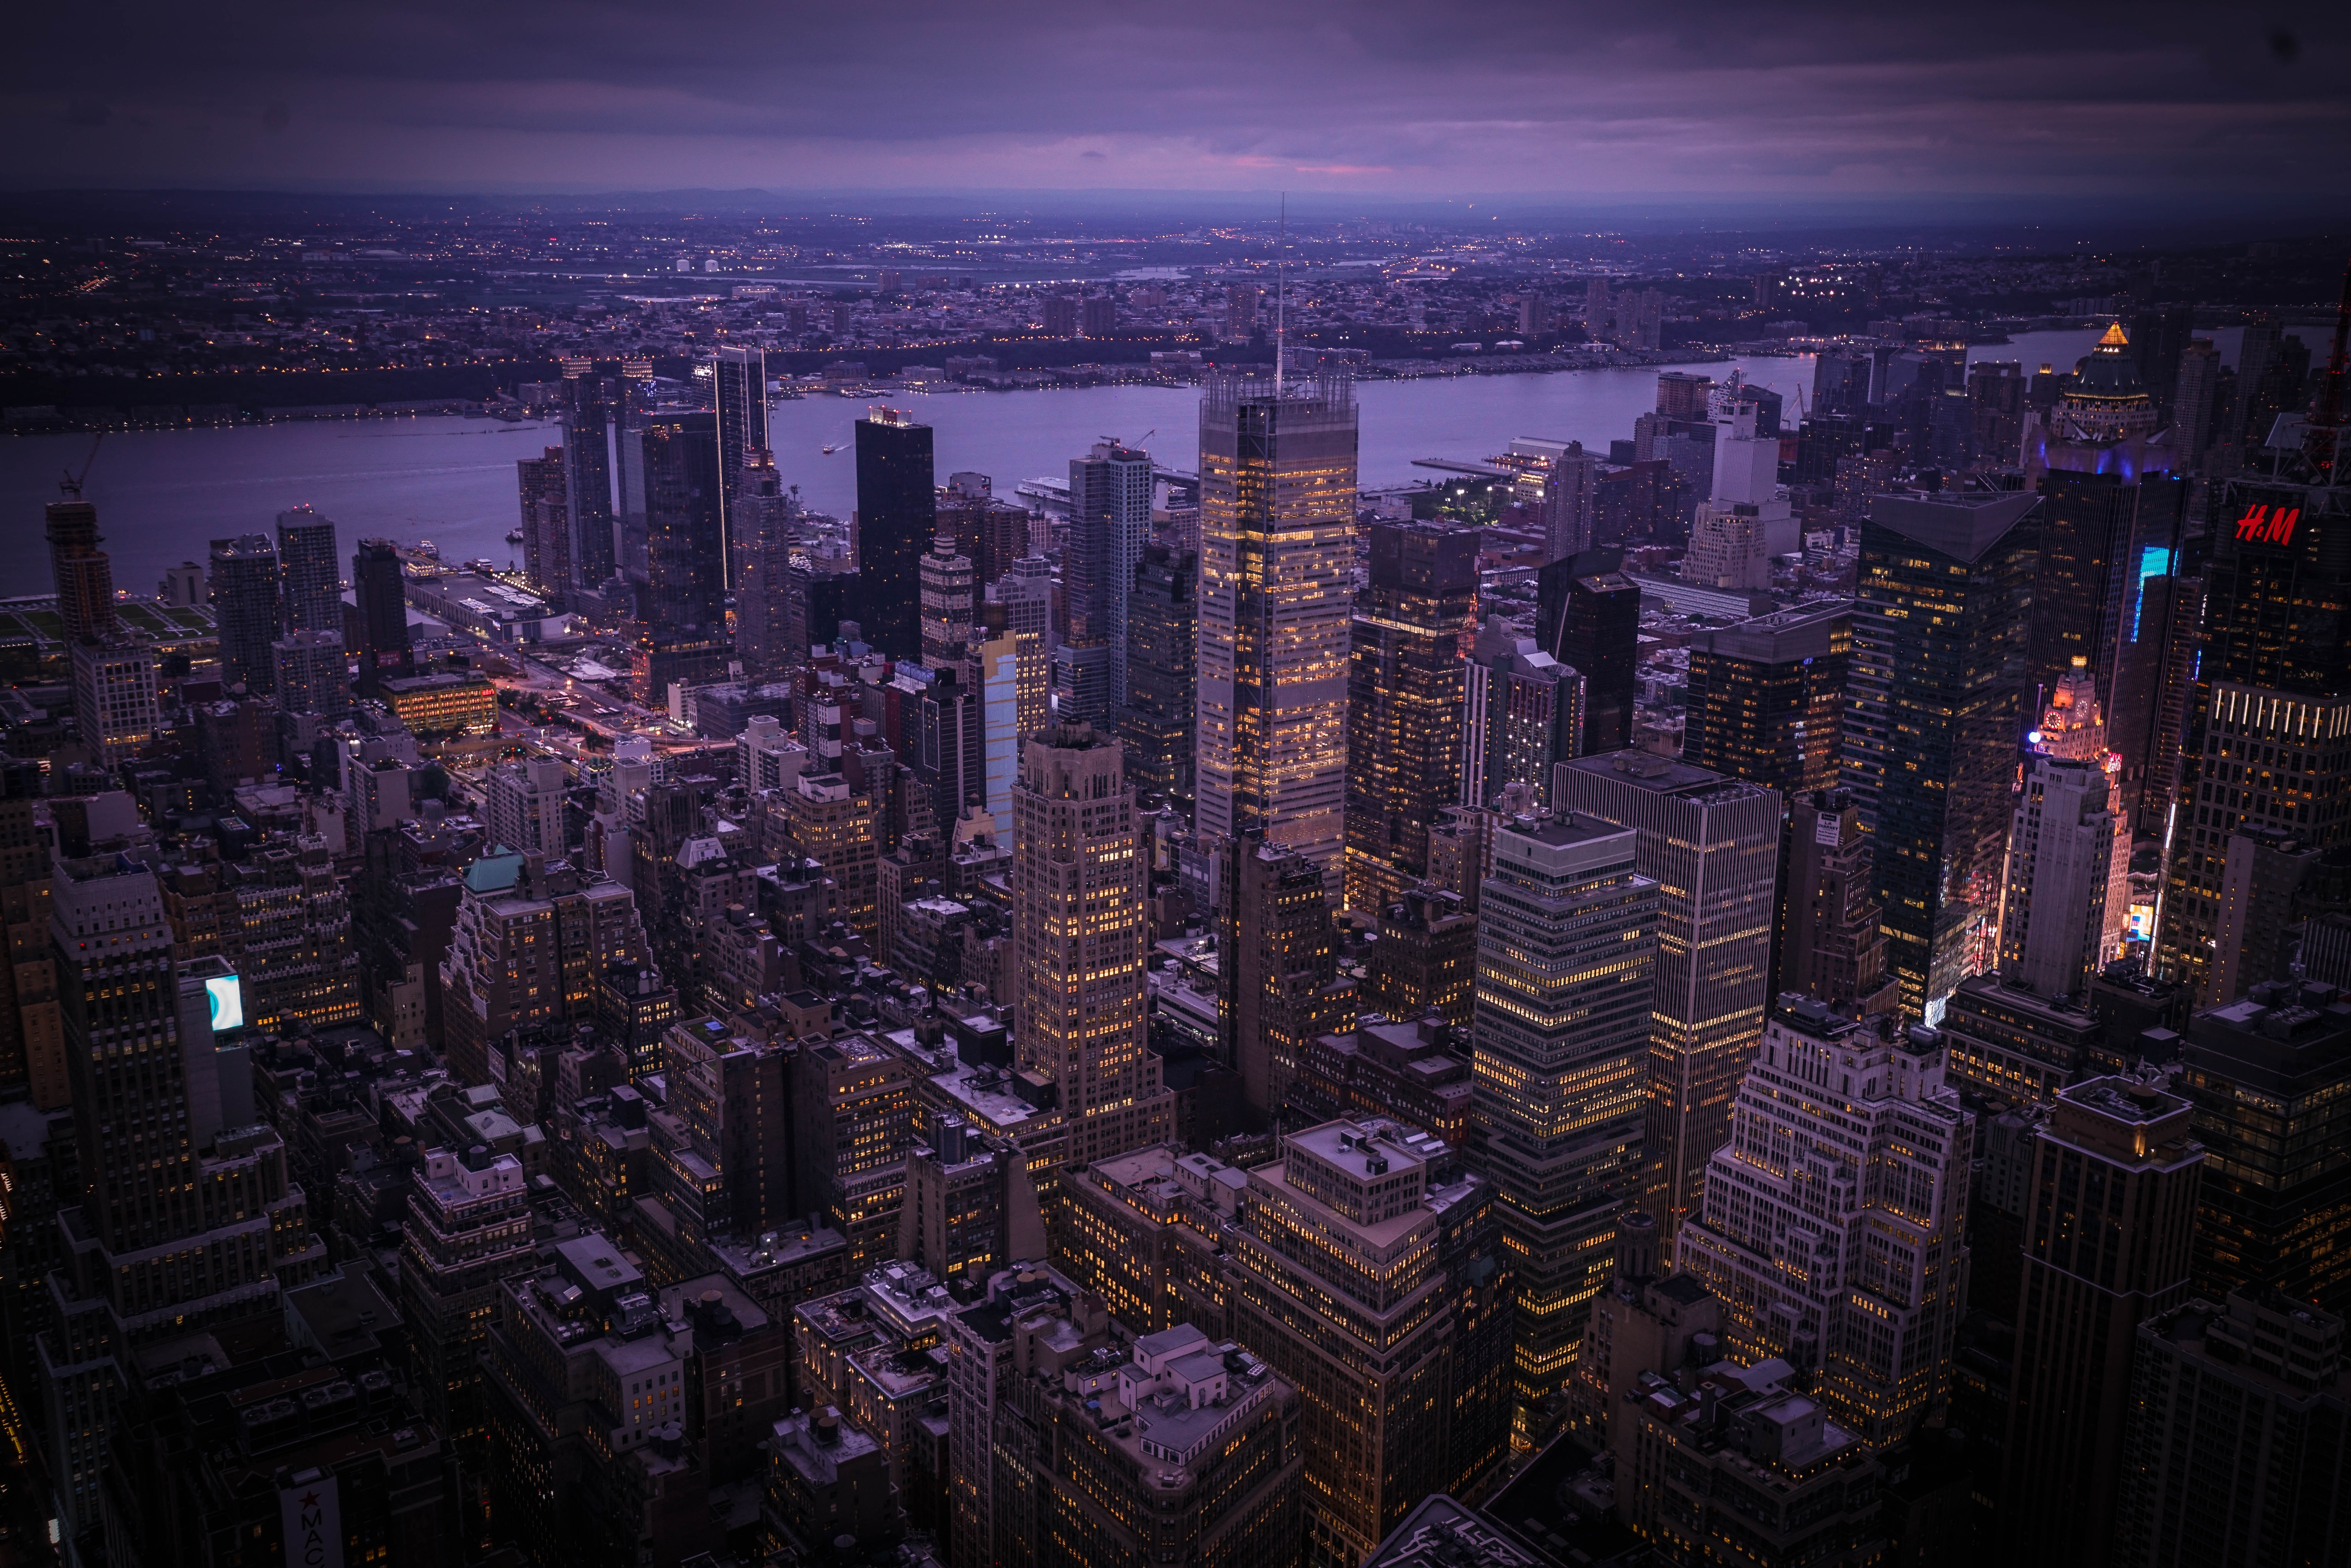 aerial photo of New York City during night